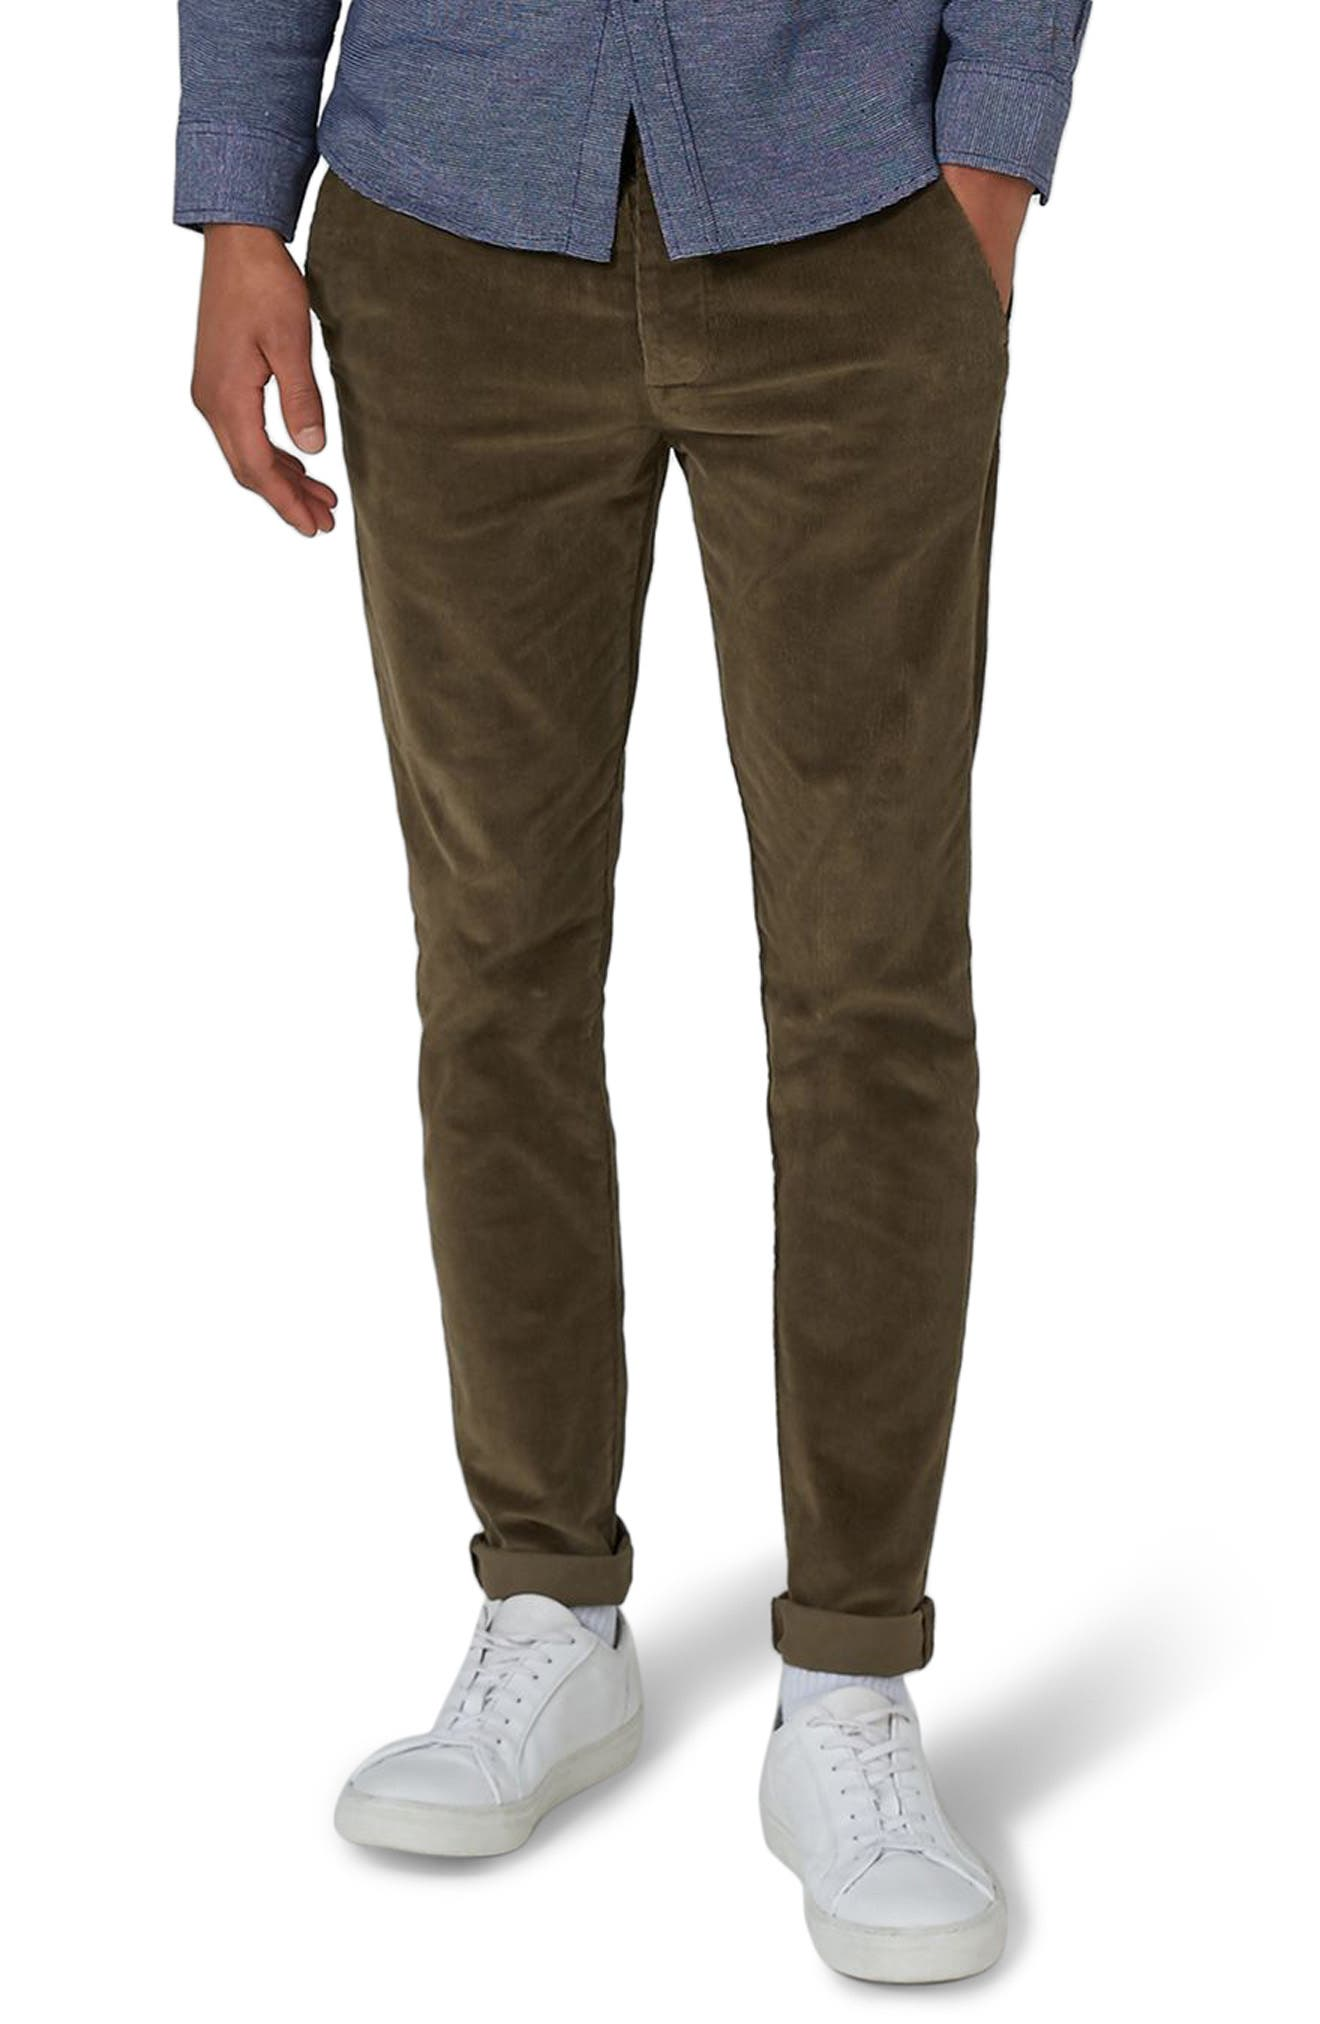 Skinny Fit Corduroy Trousers,                         Main,                         color,